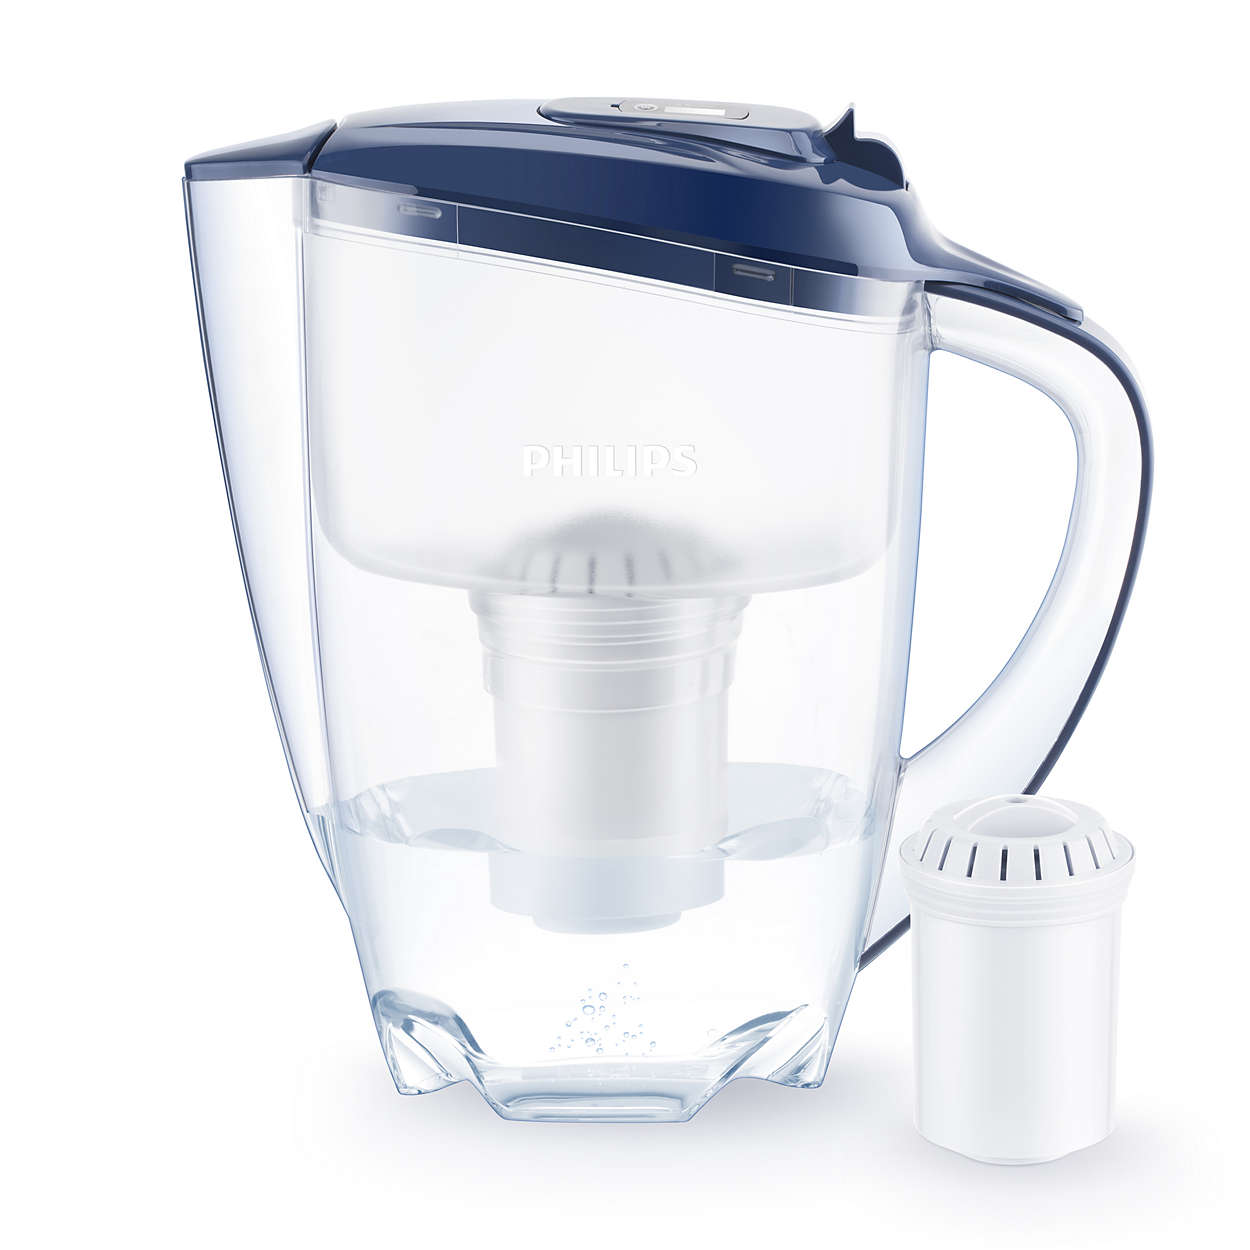 Clean water made easy